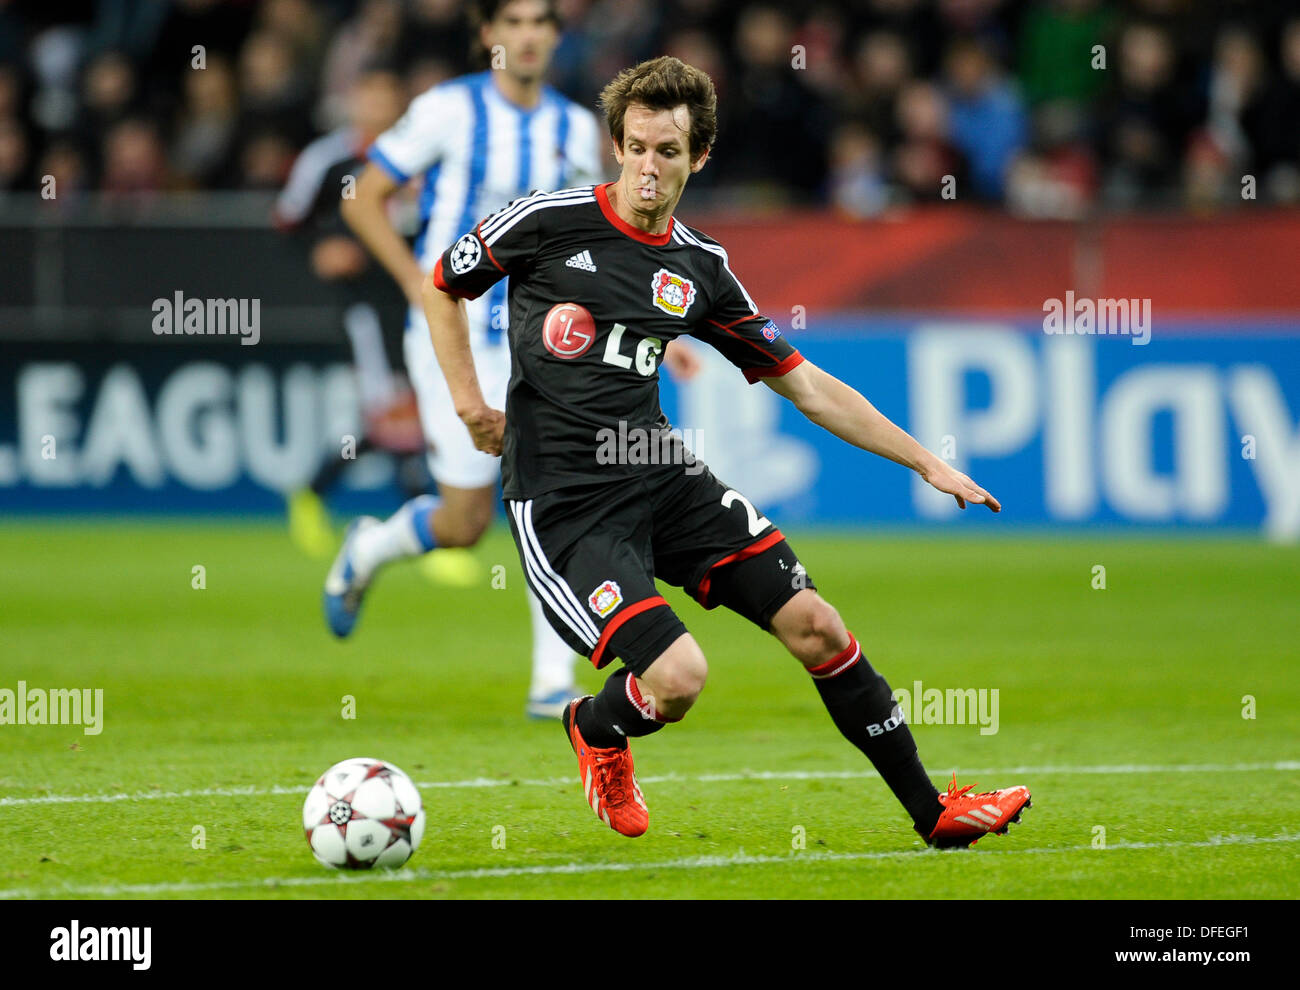 Leverkusen, Germany. 02nd Oct, 2013. UEFA Football Championsleague 2013/14 group stage 2nd matchday 2.10.2013, Bay Arena Leverkusen, Bayer 04 Leverkusen - Real Sociedad San Sebastian --- Robbie Kruse (Leverkusen) Credit:  kolvenbach/Alamy Live News - Stock Image